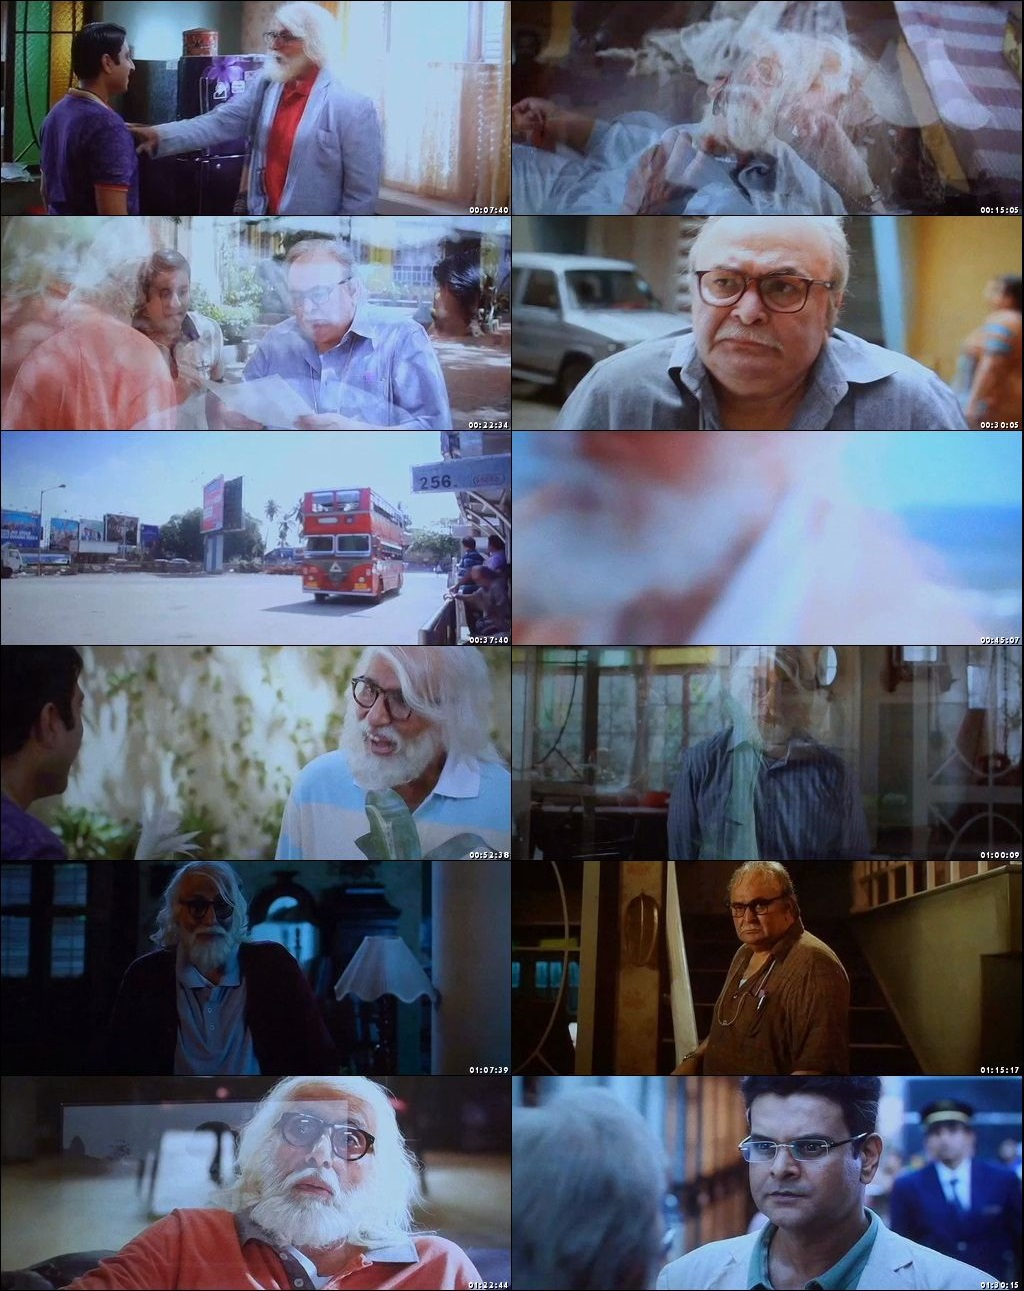 102 Not Out 2018 Full Movie Download 720p HDRip, BluRay, DVDRip, mkv, Mp4 1080p Full Hd